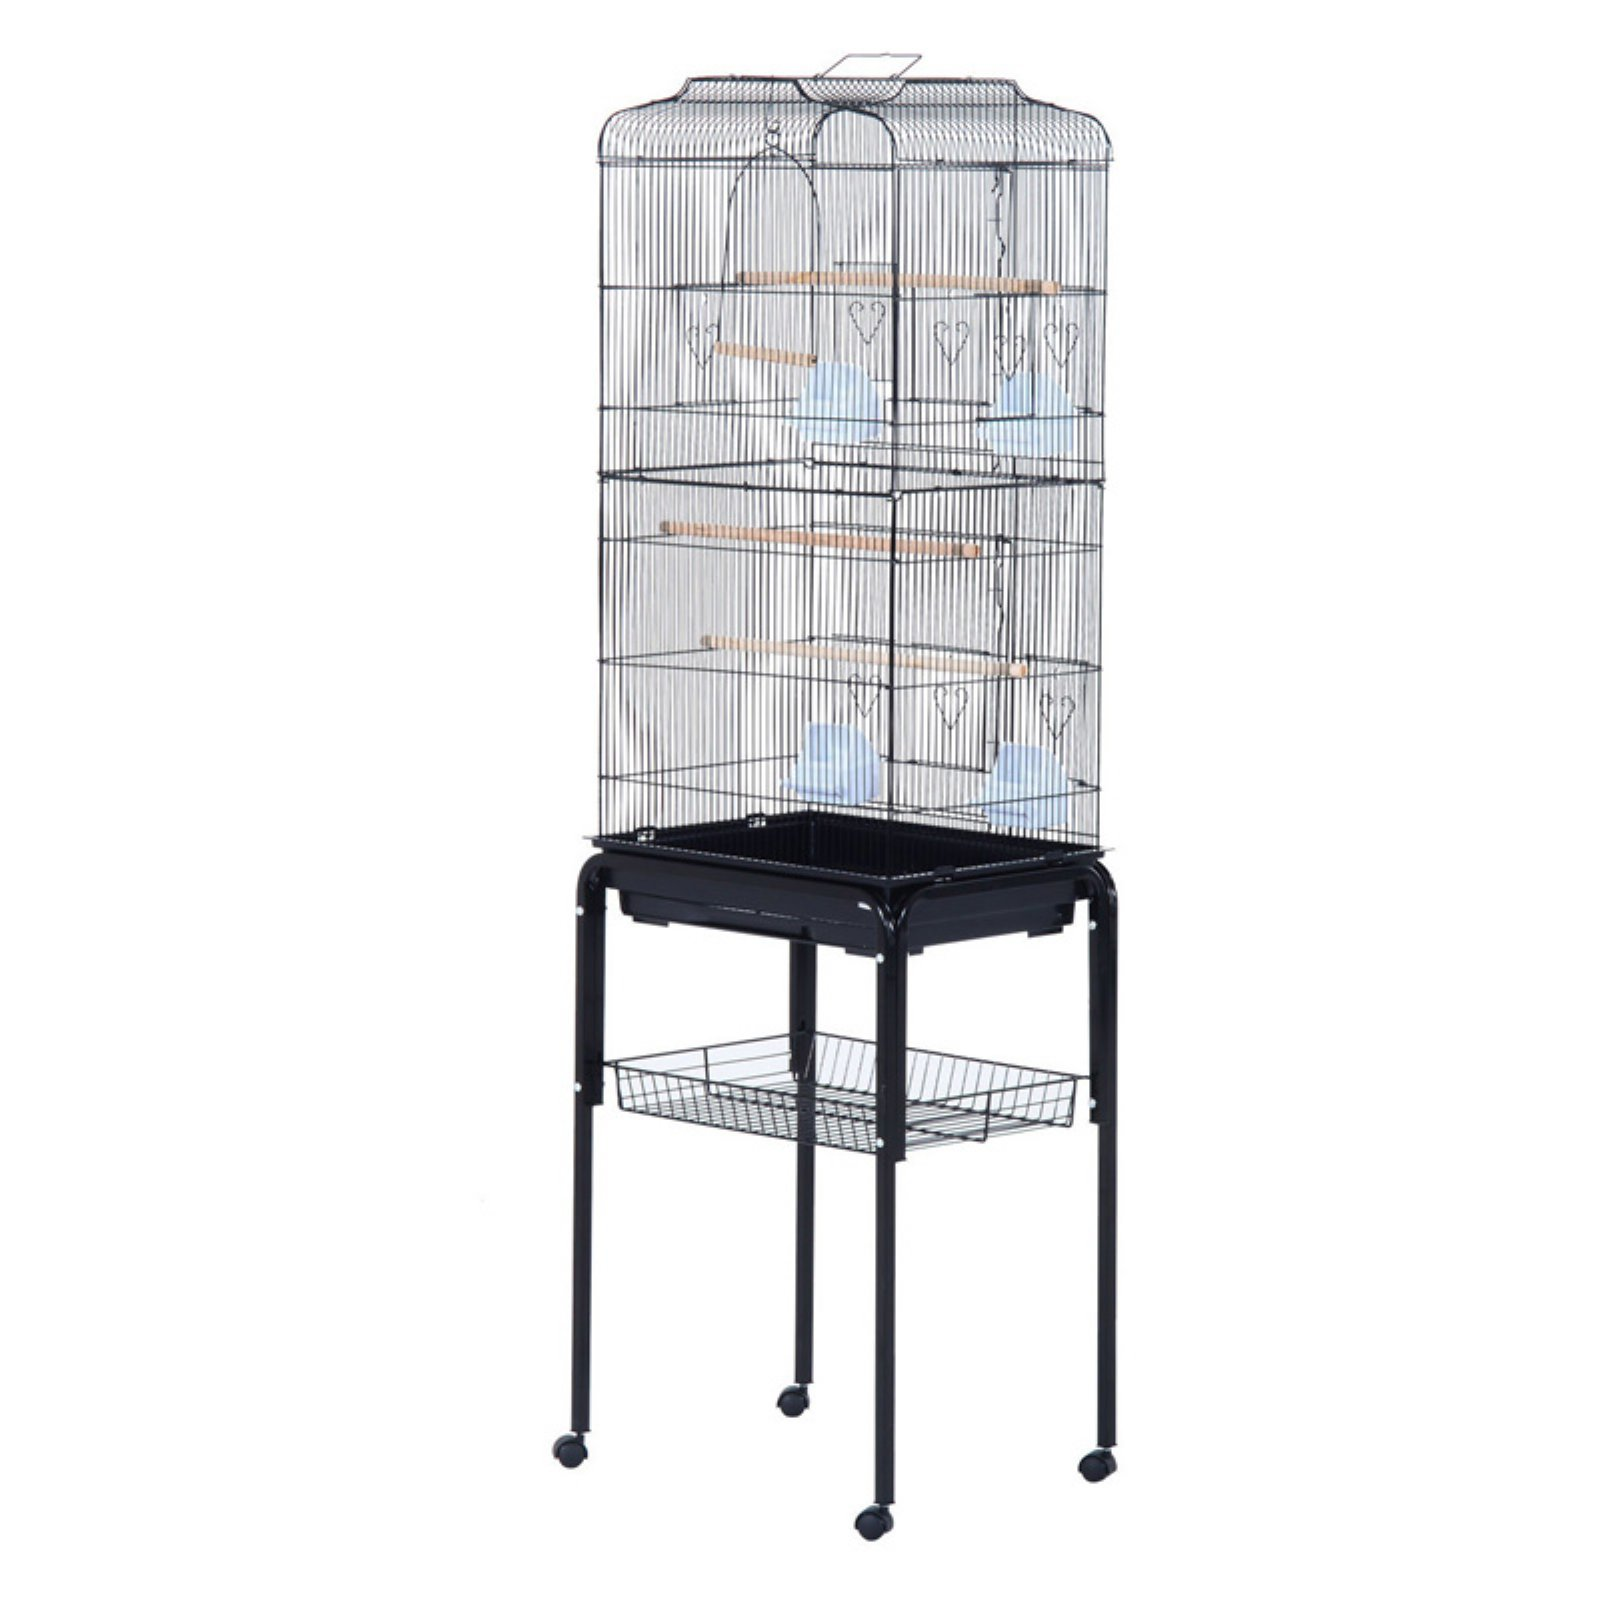 Pawhut 63 in. Bird Cage with Stand